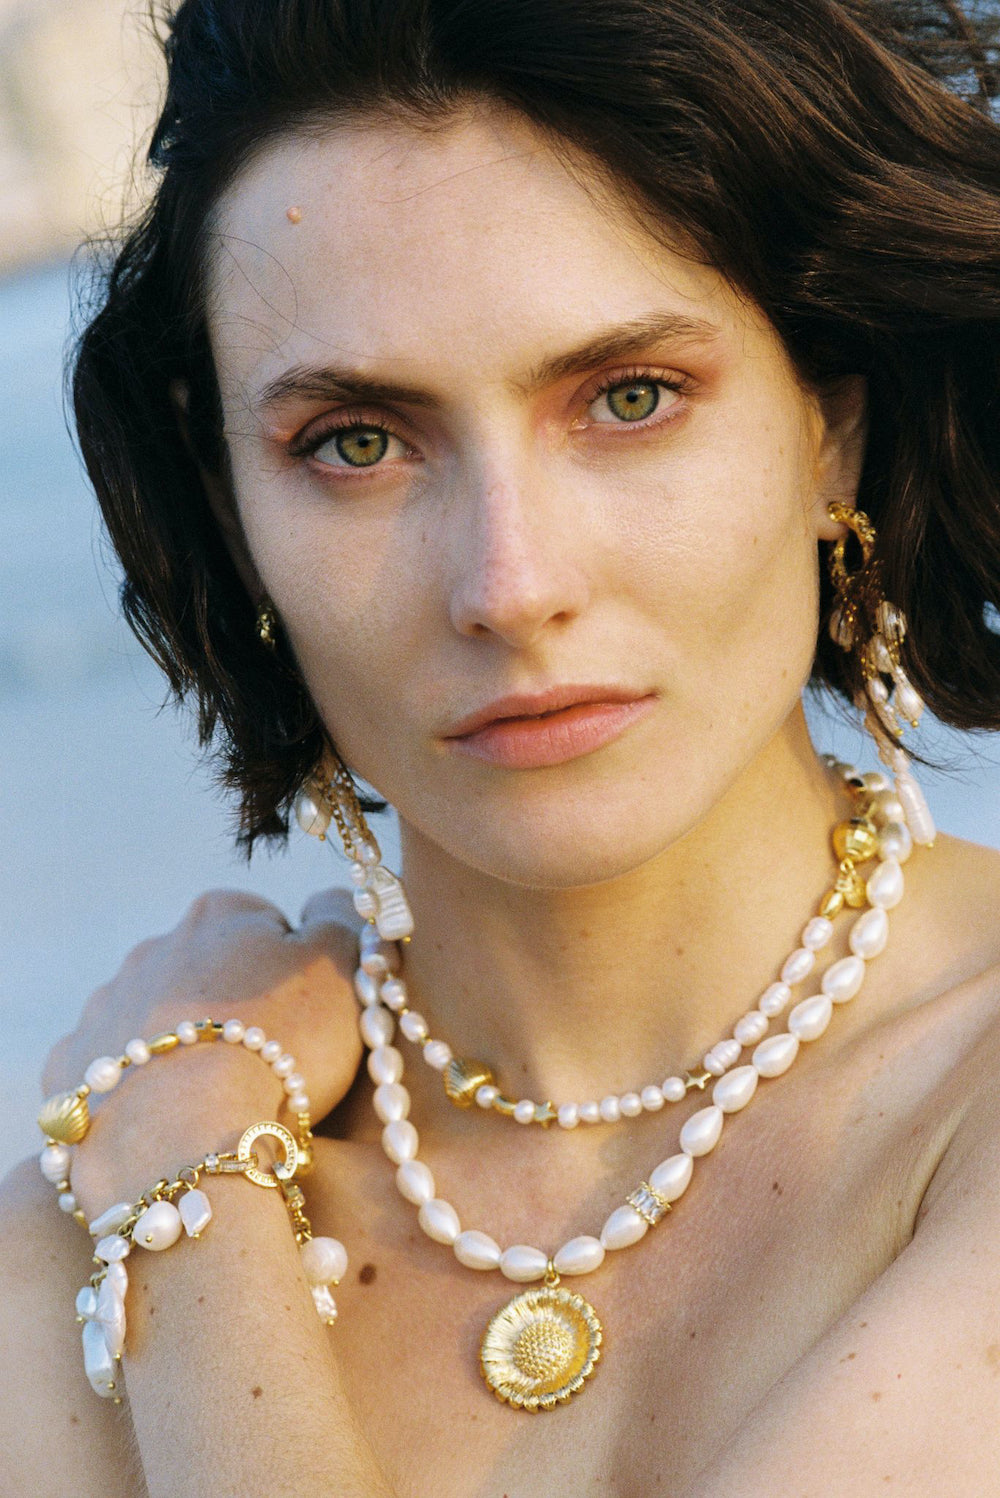 Woman wearing pearl earrings, bracelets and necklaces